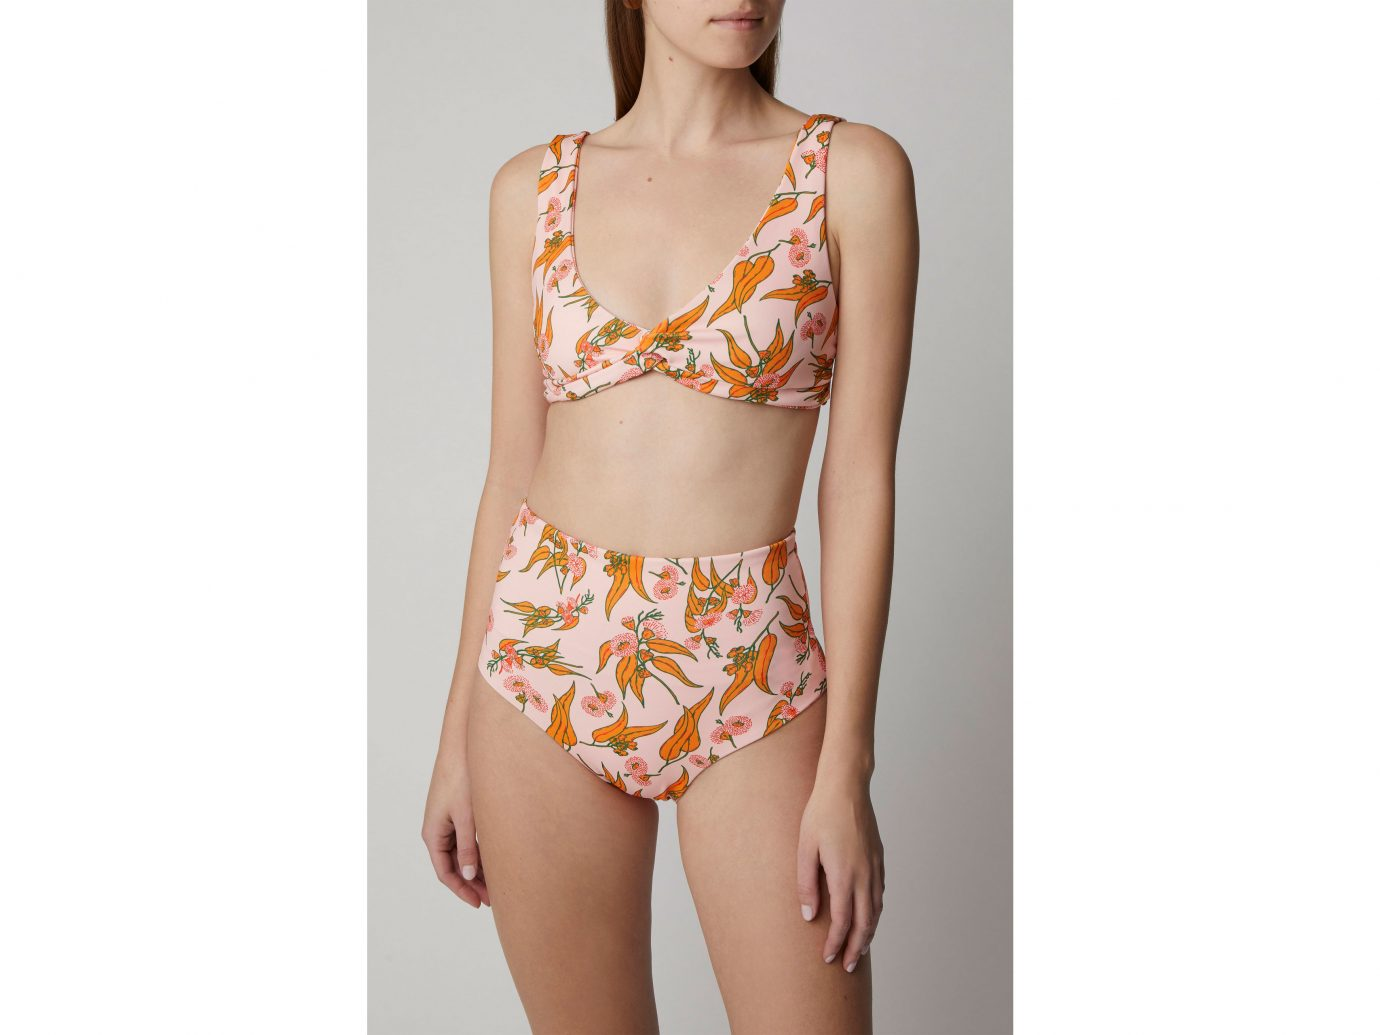 Camp Cove Lena Twist Bikini Top and Katie High-Waisted Bikini Briefs